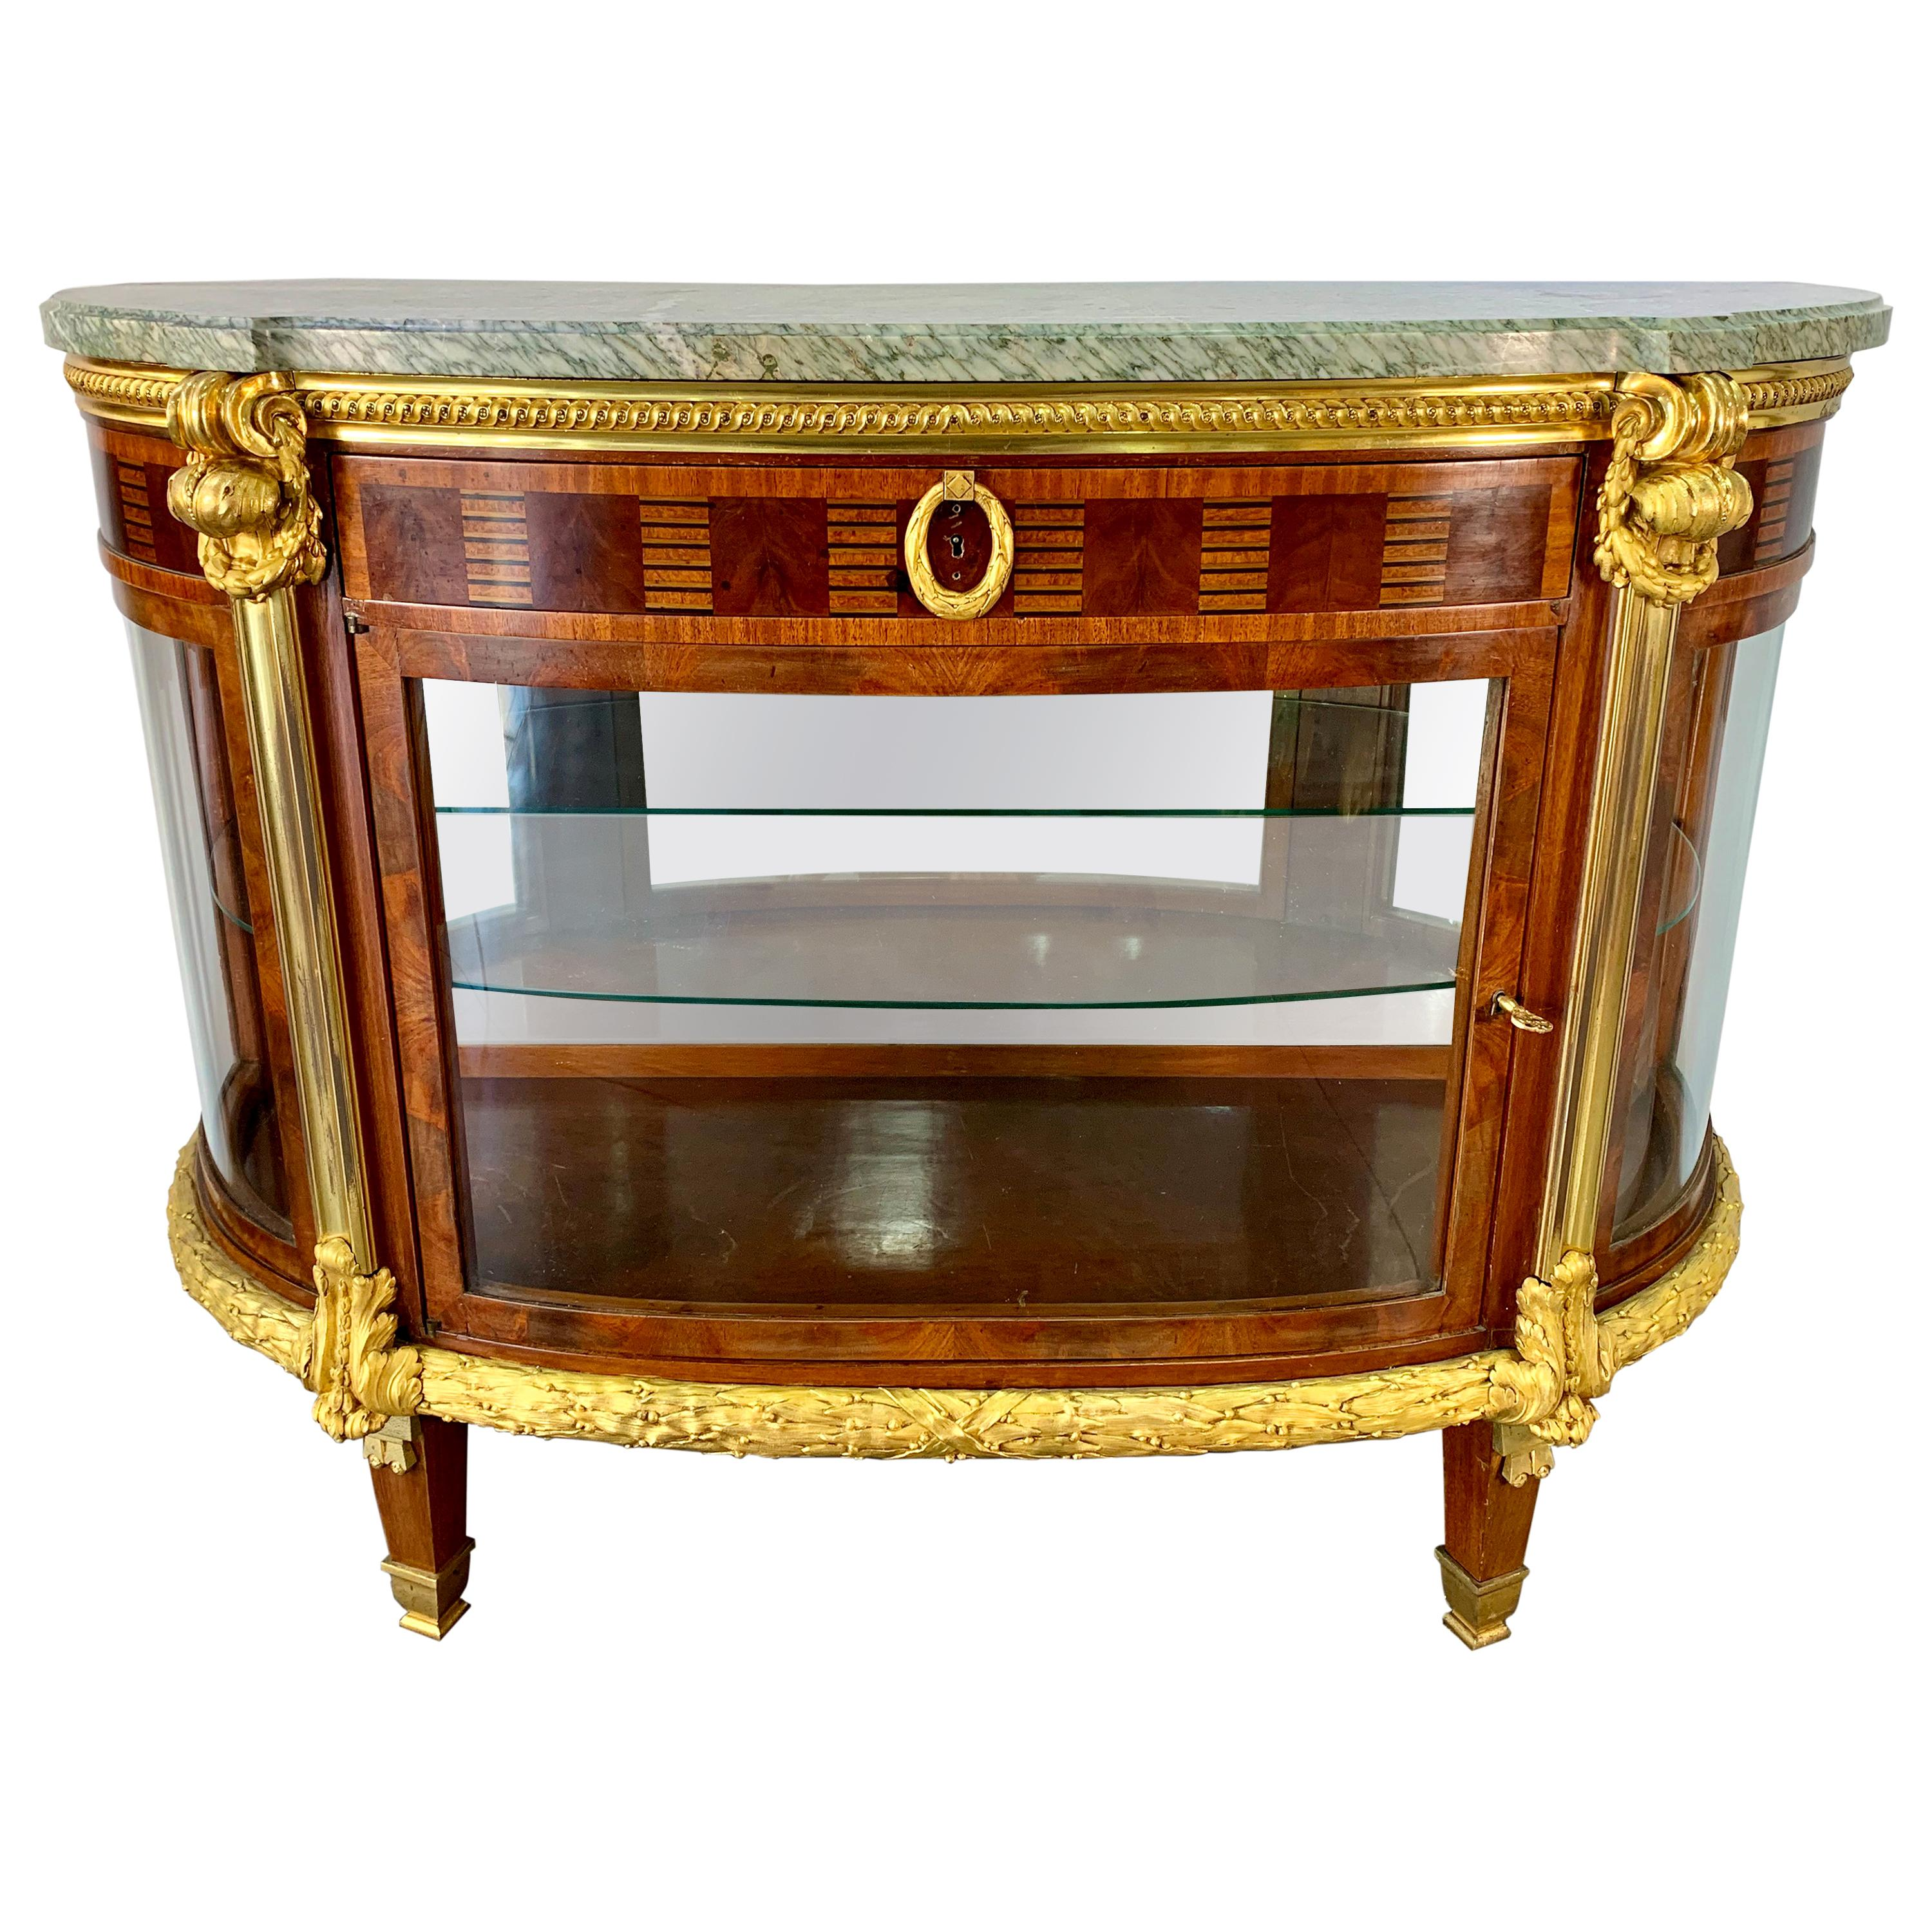 French 19th Century Ormolu Mounted D-Shaped Commode or Vitrine